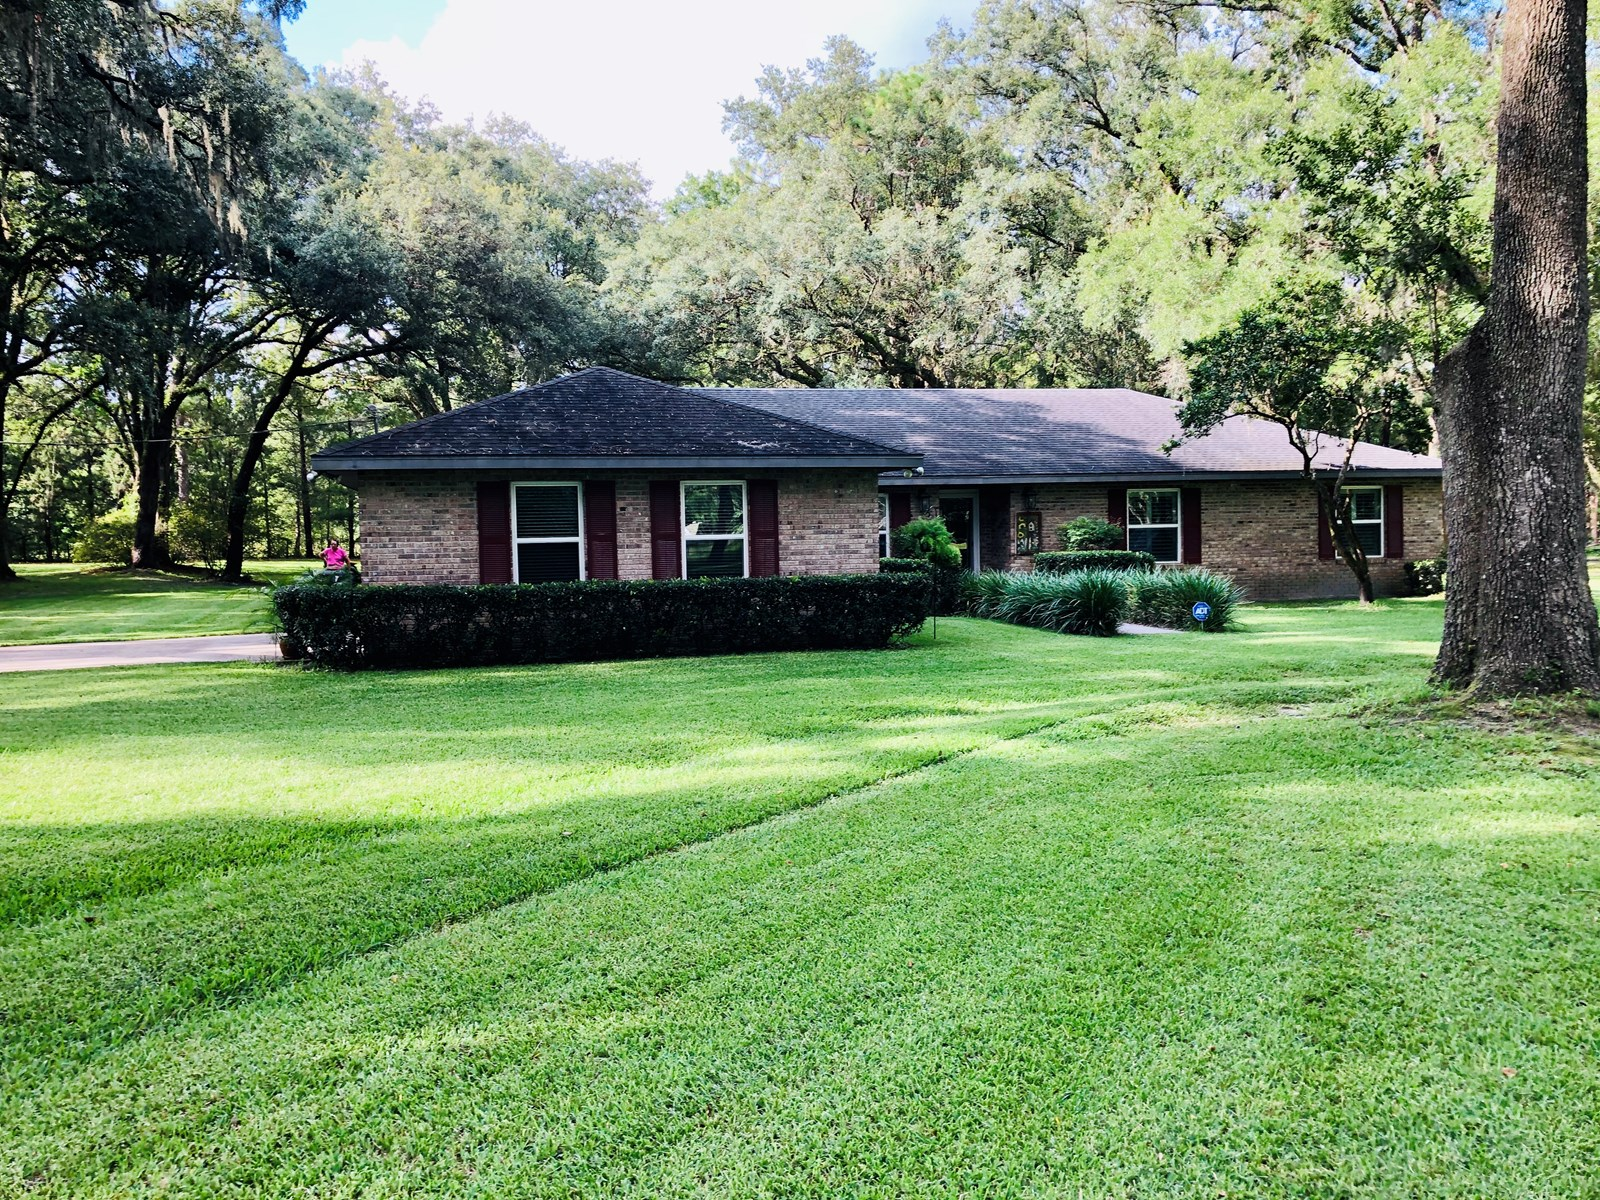 3/2 home on 2.55 acres 7 miles outside of High Springs, FL